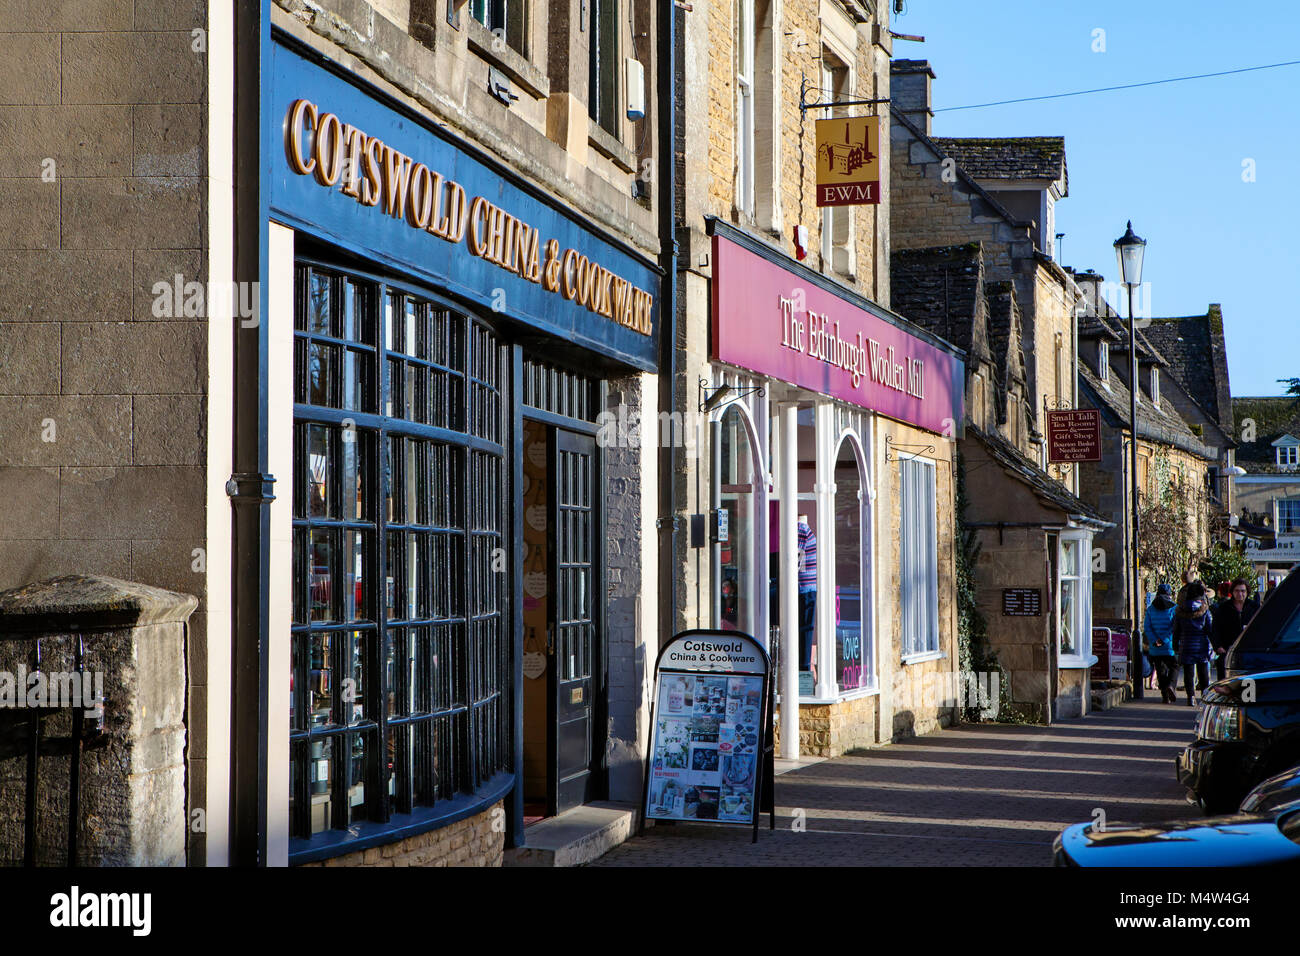 BOURTON ON THE WATER, UK - FEBRUARY 15th, 2018: Row of shops in Bourton-on-the-Water, which  is a village in Gloucestershire Stock Photo